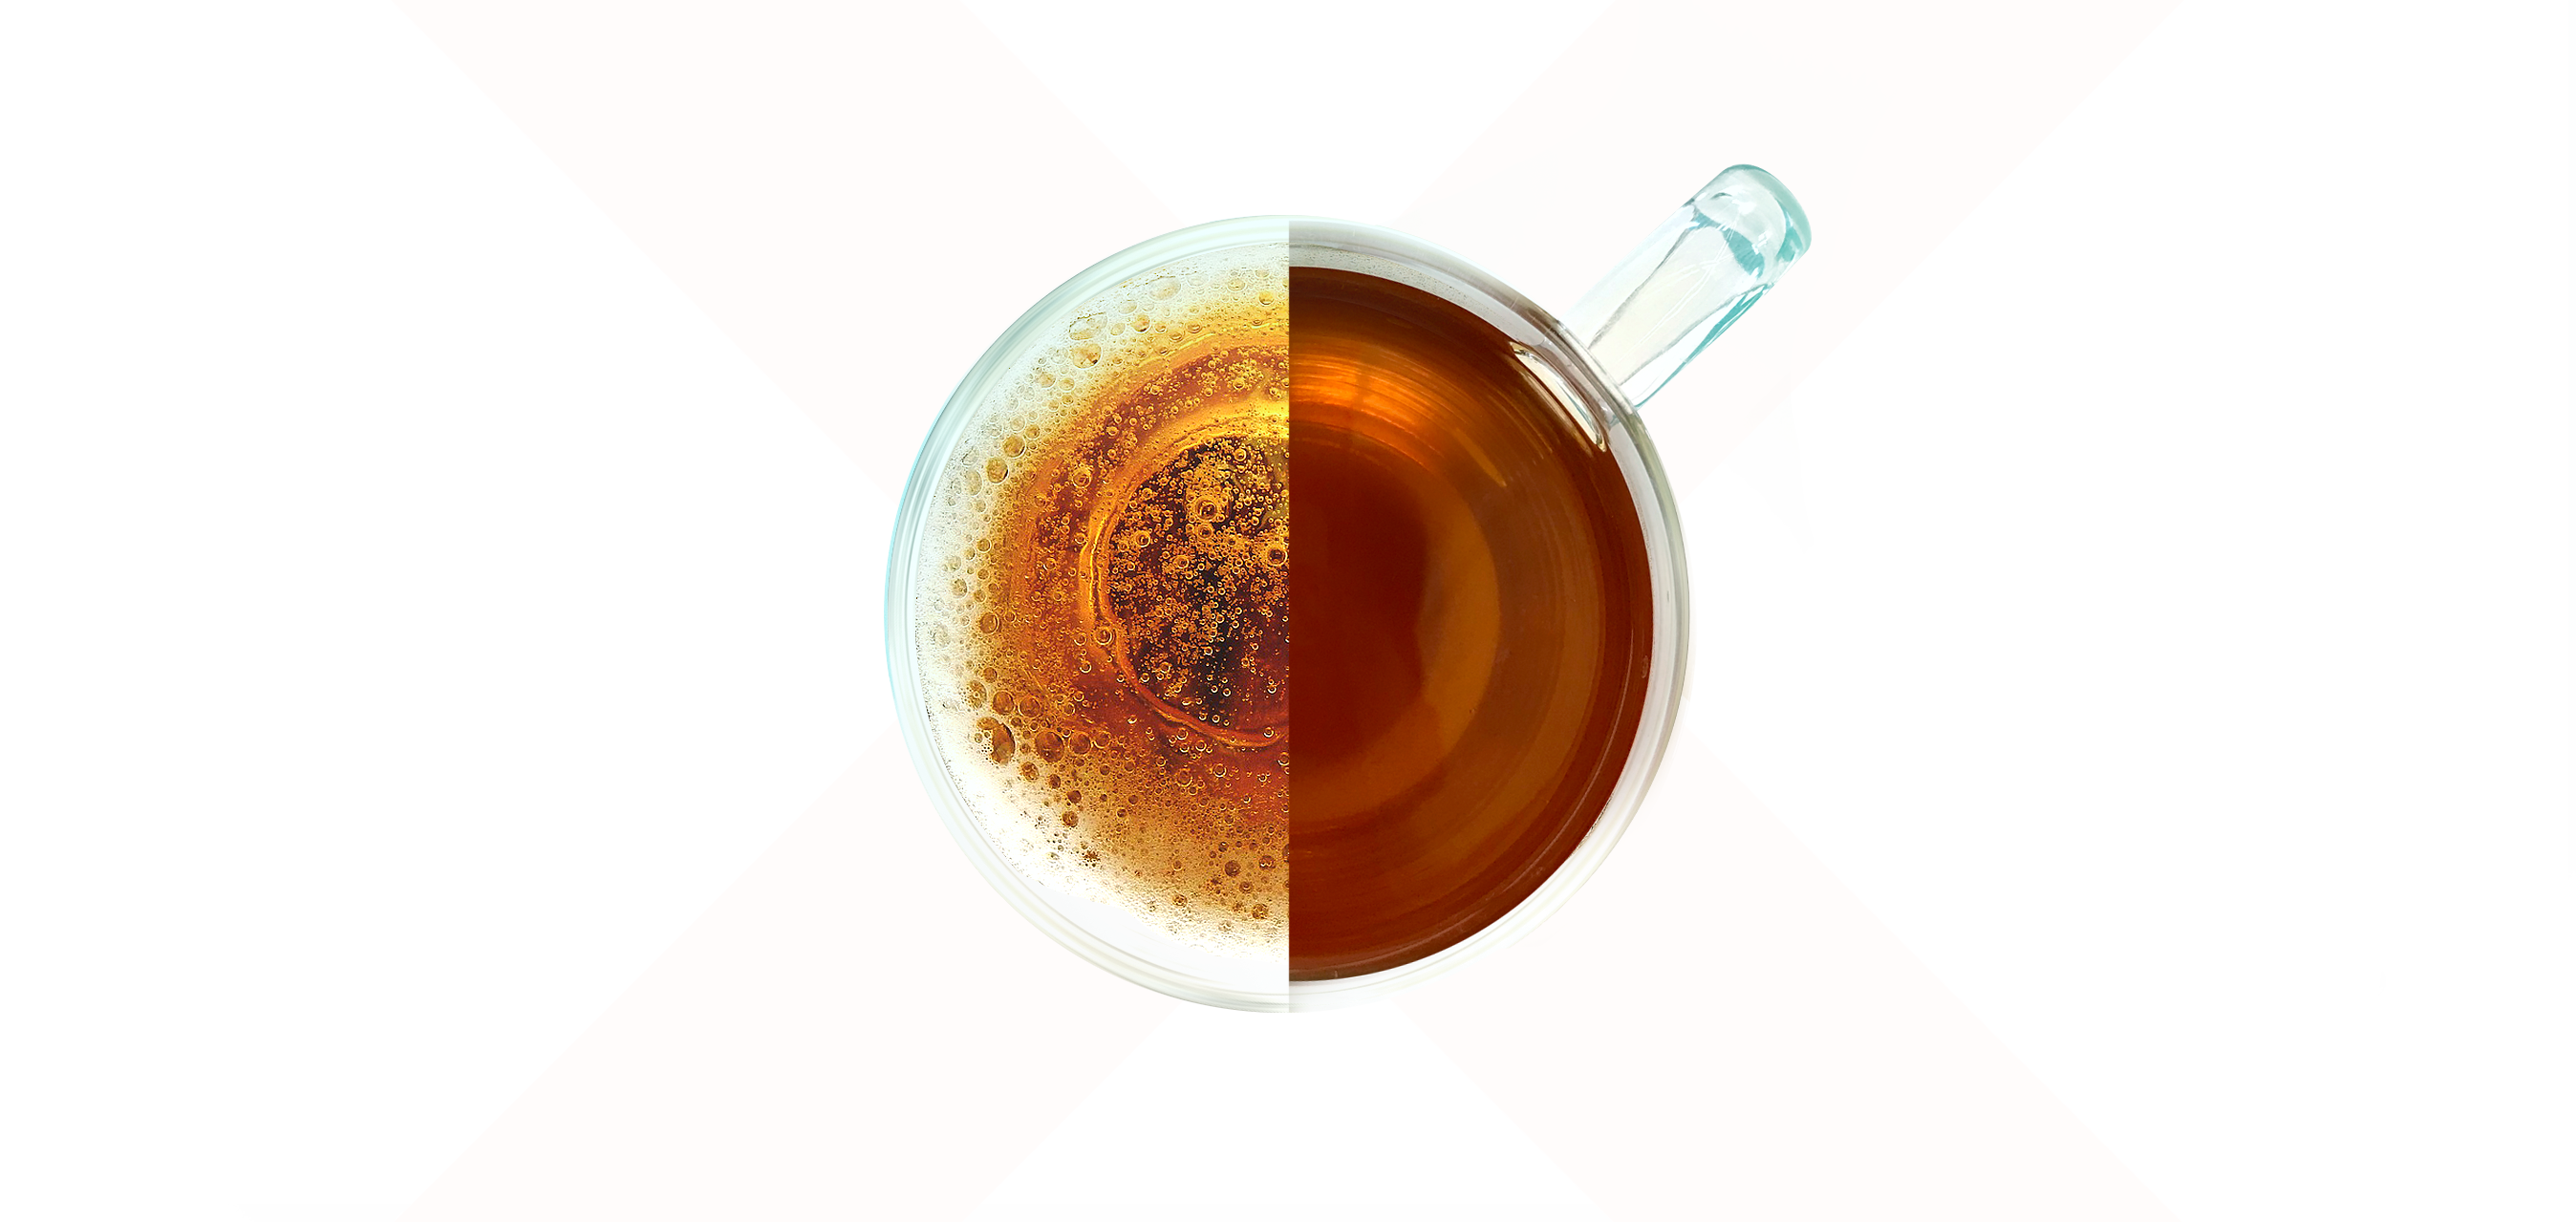 A video featuring the making of Beau's x DAVIDsTEA collaboration creating London Fog, a new & premium tea-infused beer.